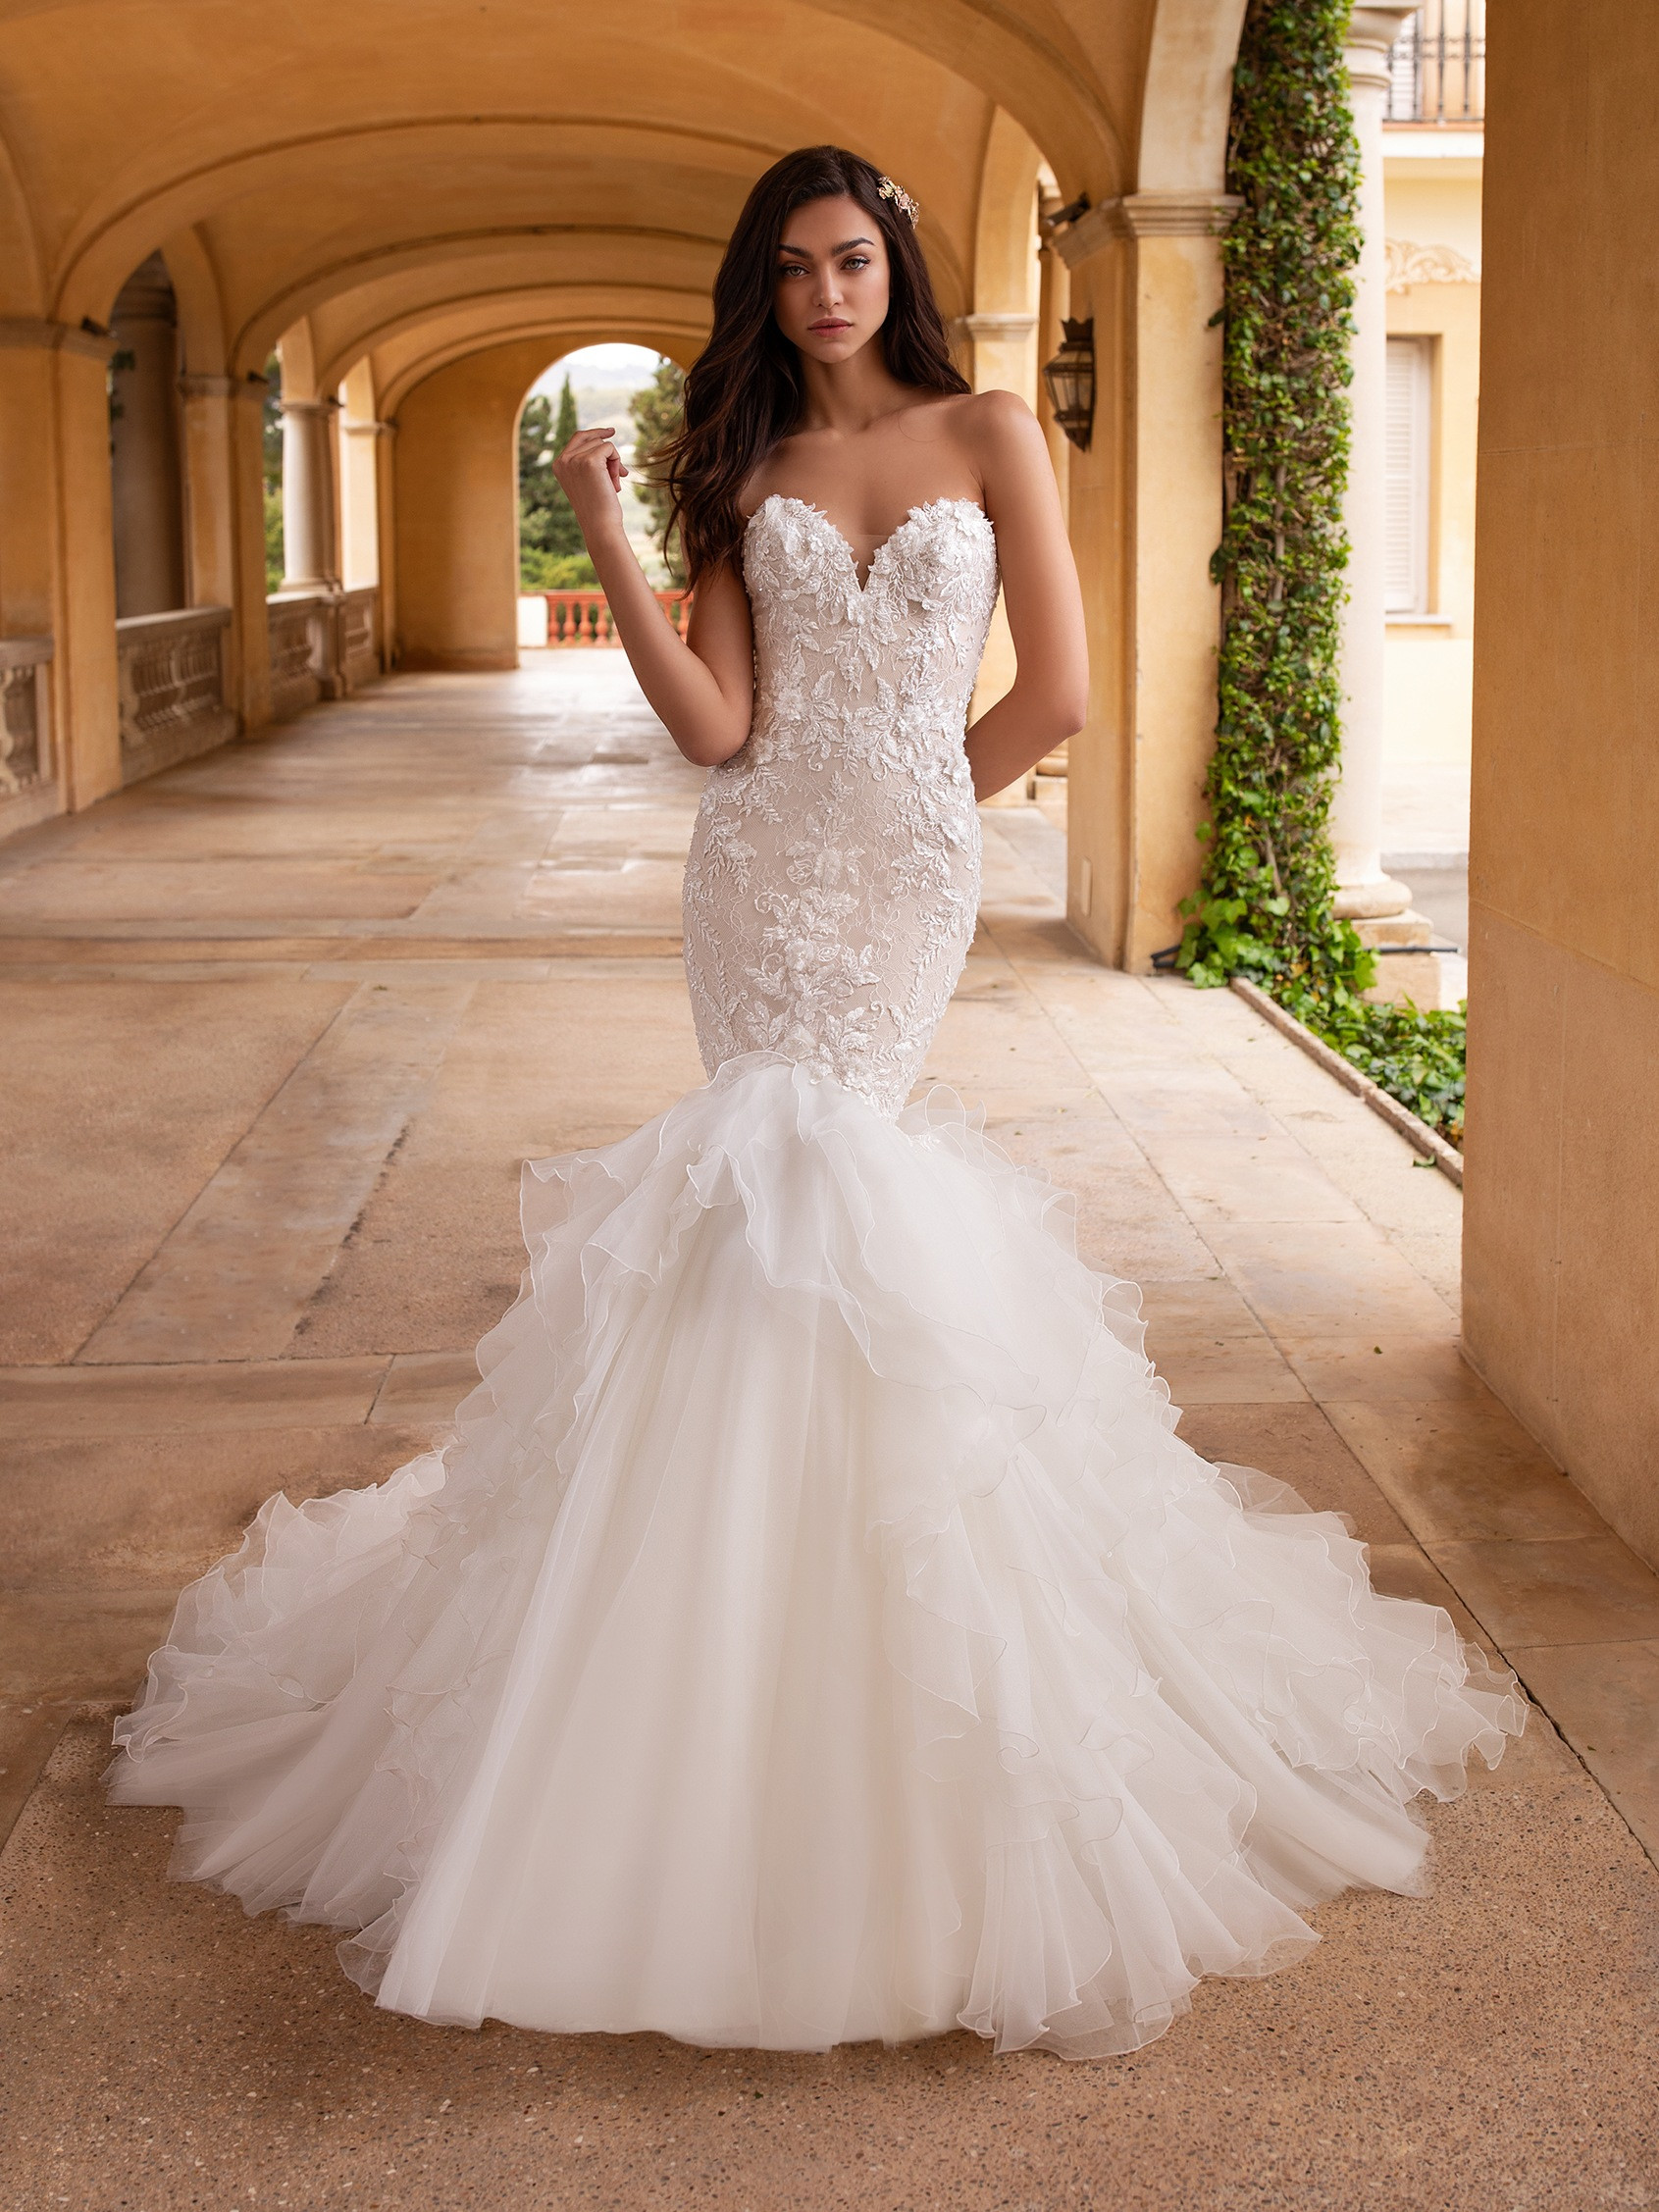 front wedding dress mermaid silhouette sweetheart neckline open back embroidered tulle fabric callisto